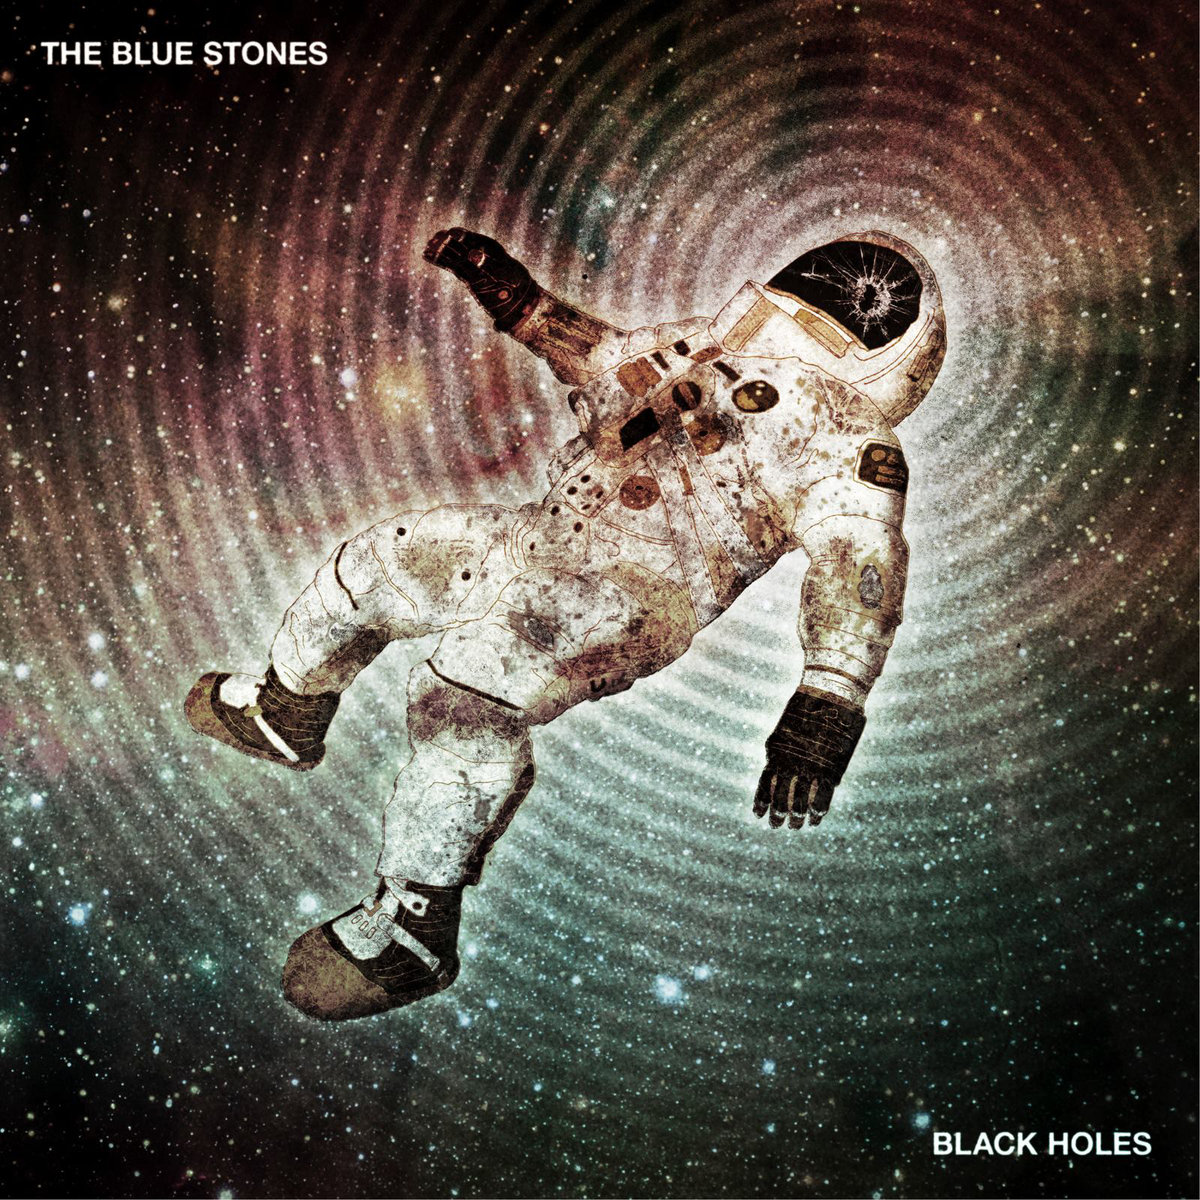 The Blue Stones - Orbit @ 'BLACK HOLES' album (alternative, blues)